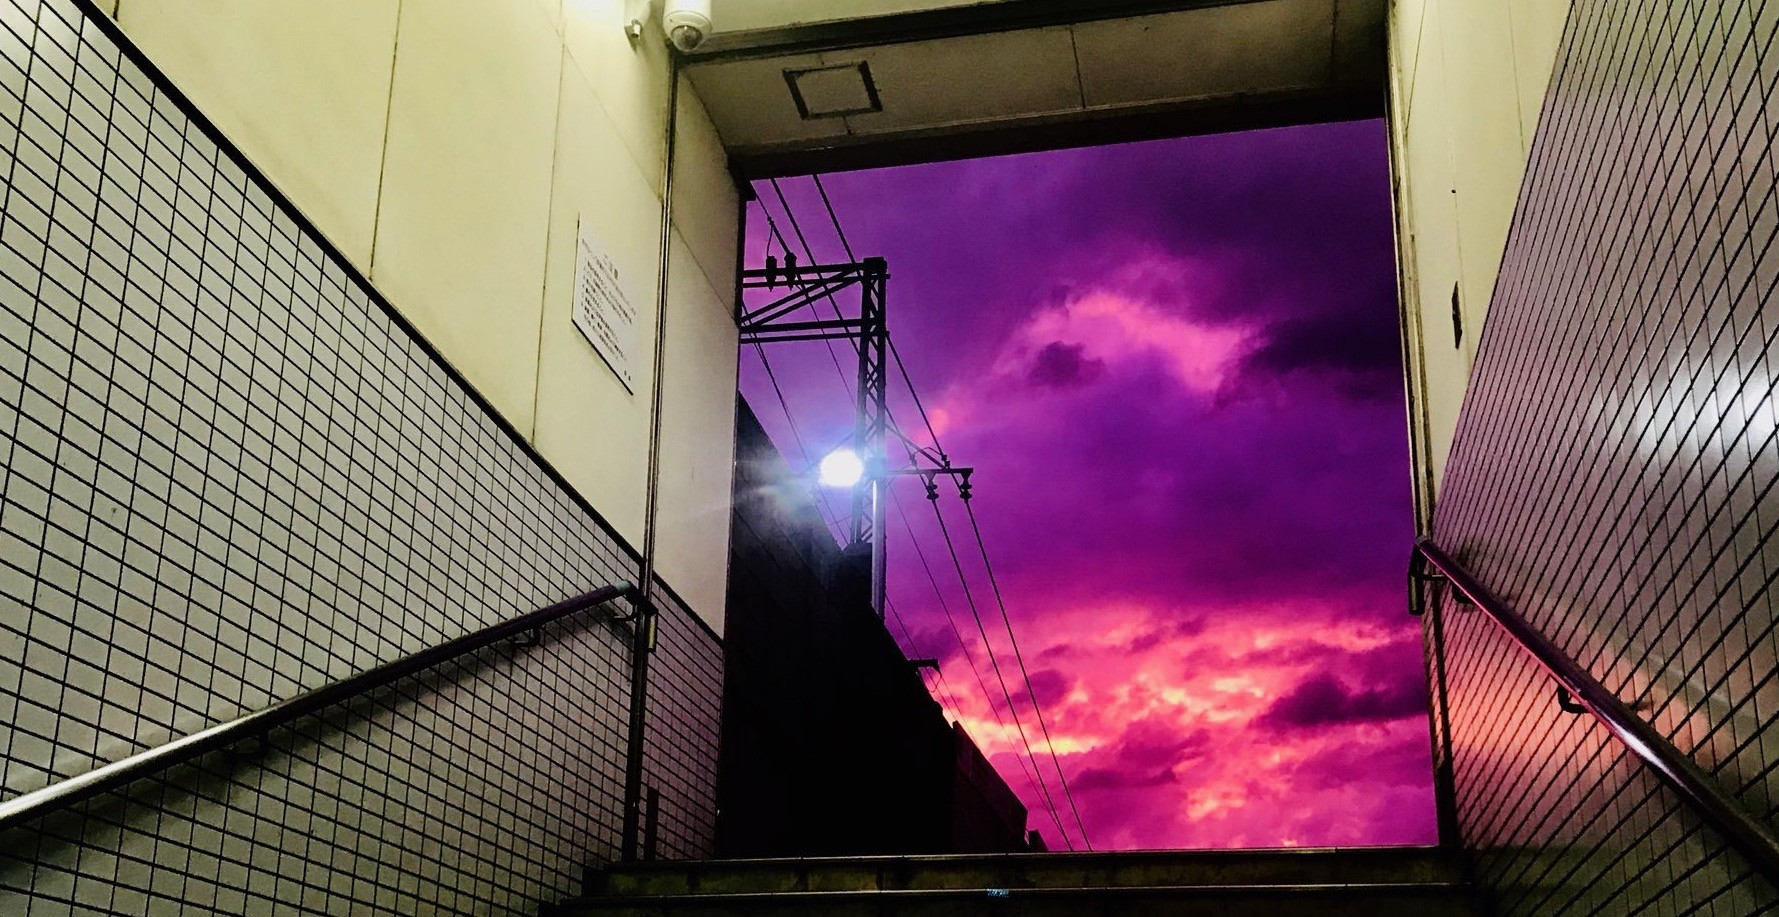 The skies above Japan turned pink and purple as Typhoon Hagibis approached